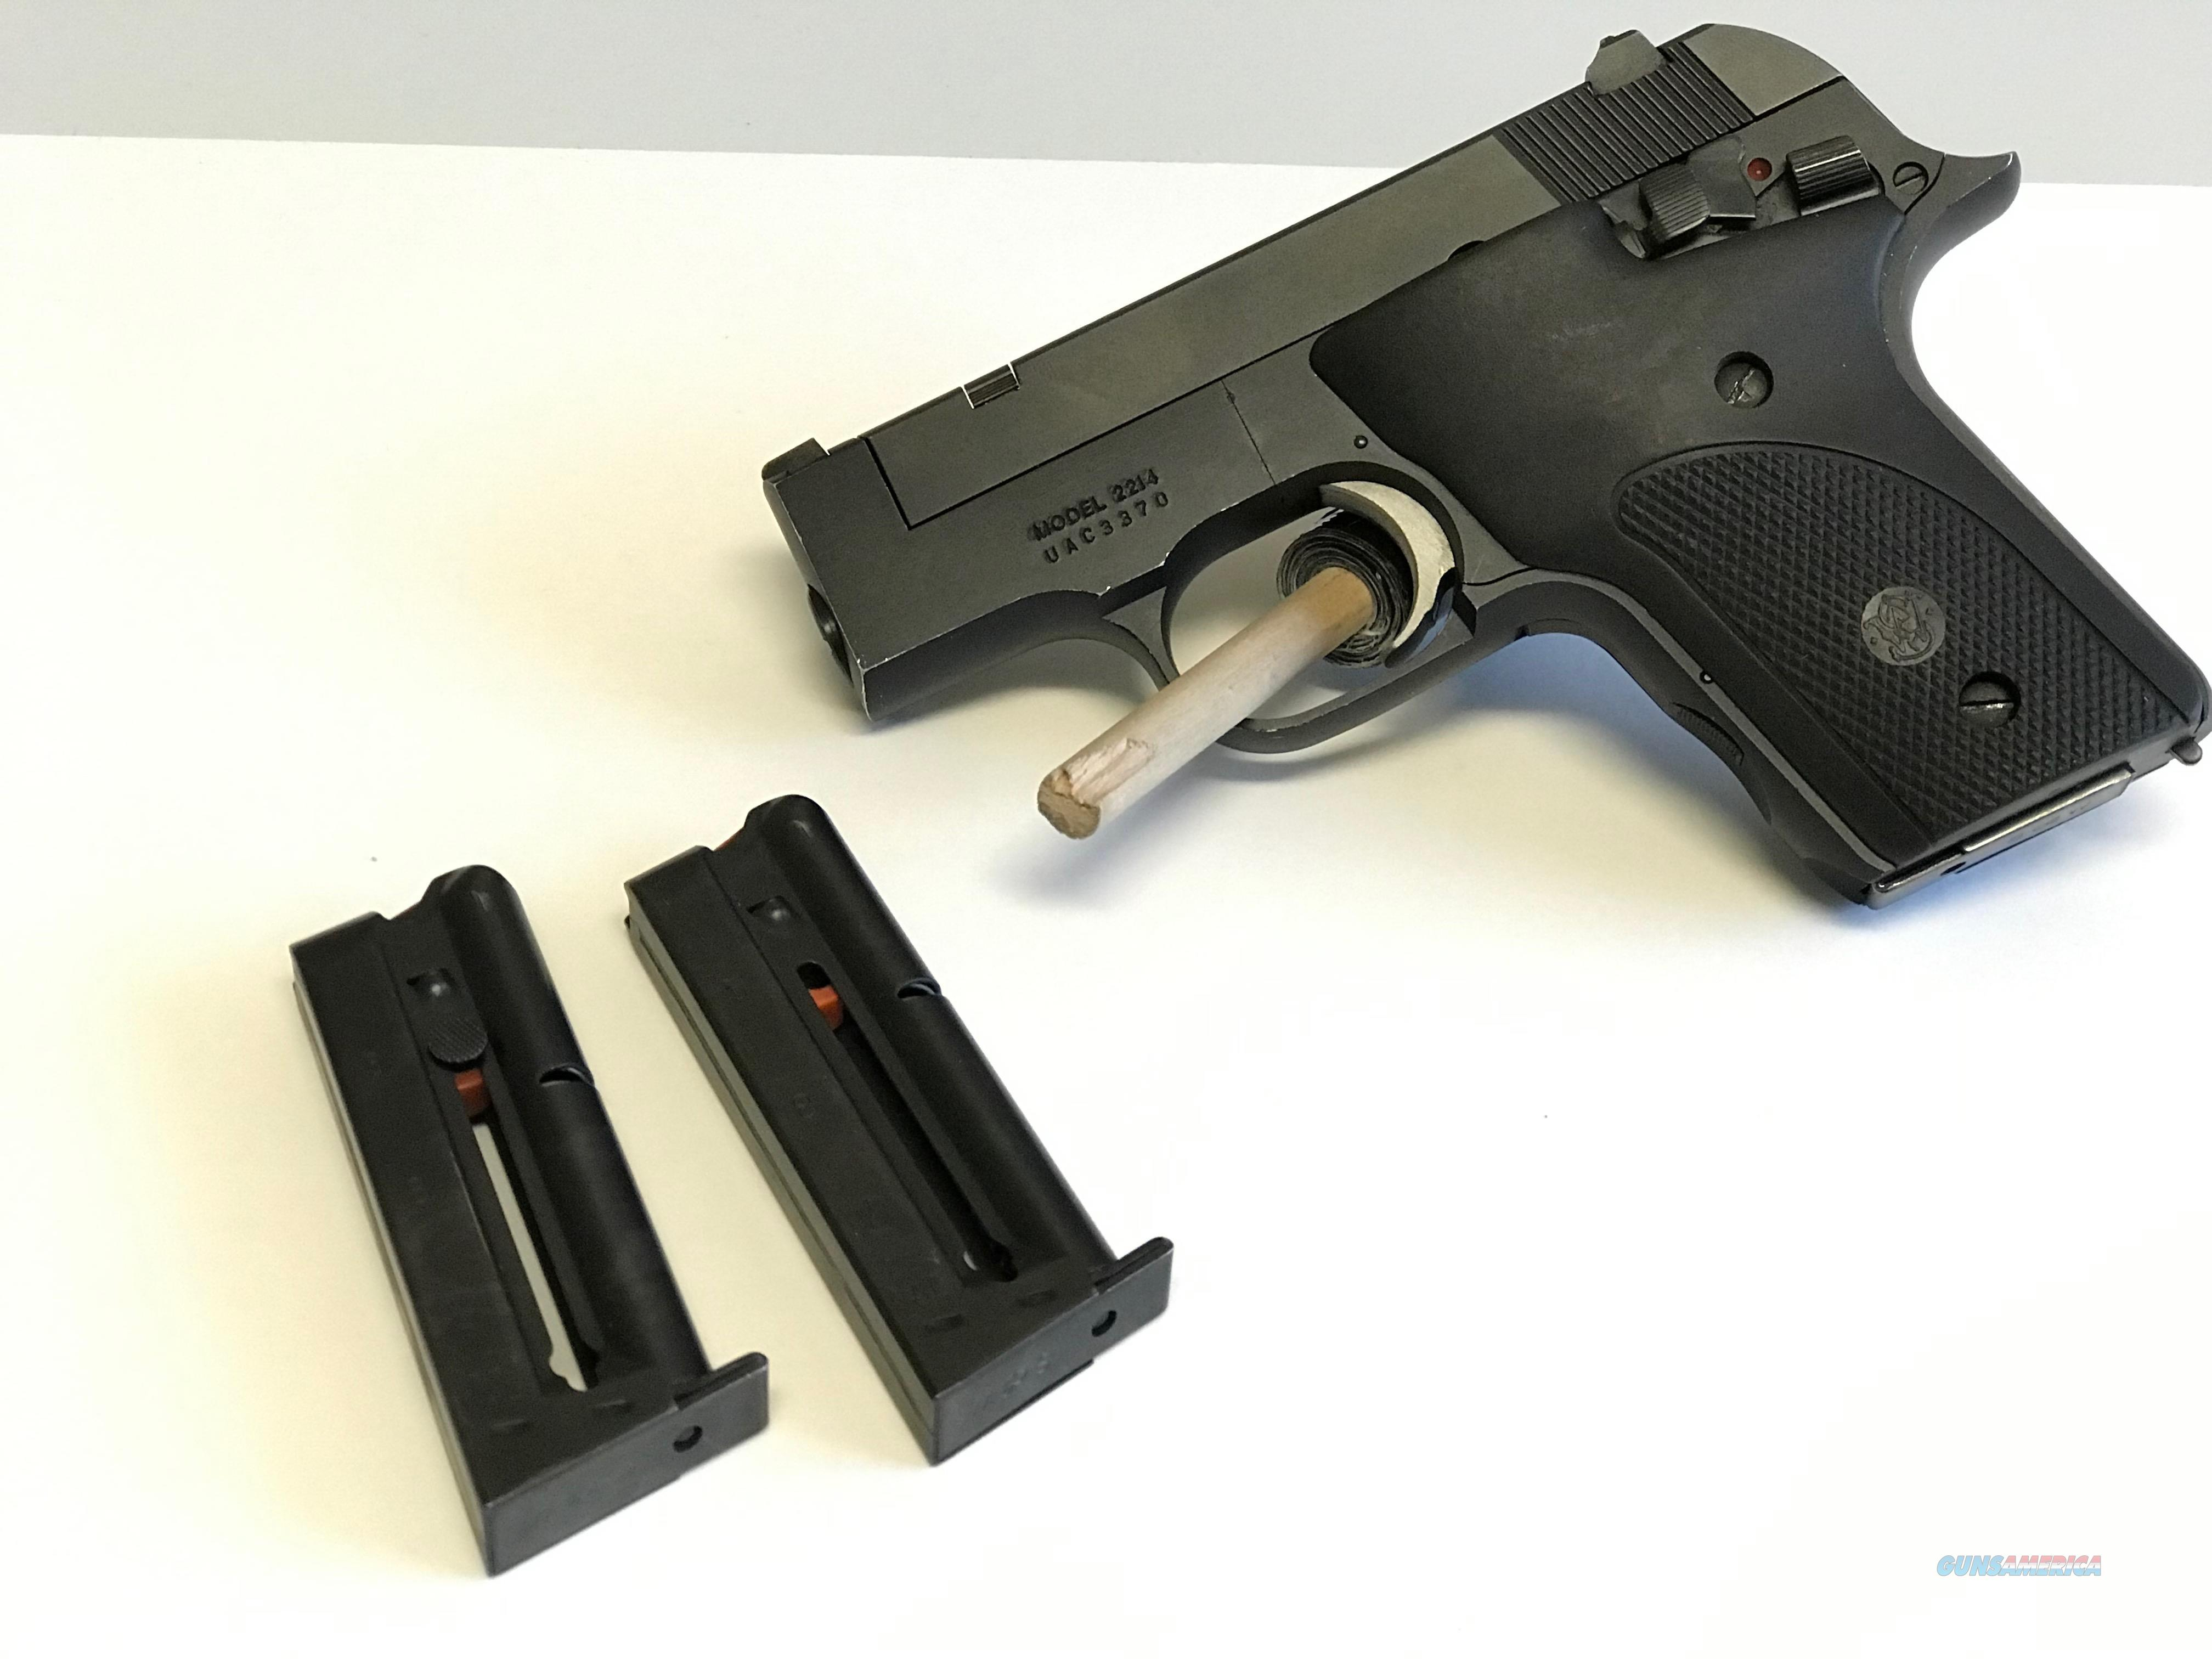 USED Smith & Wesson Model 2214 22LR w/3 Mags  Guns > Pistols > Smith & Wesson Pistols - Autos > .22 Autos